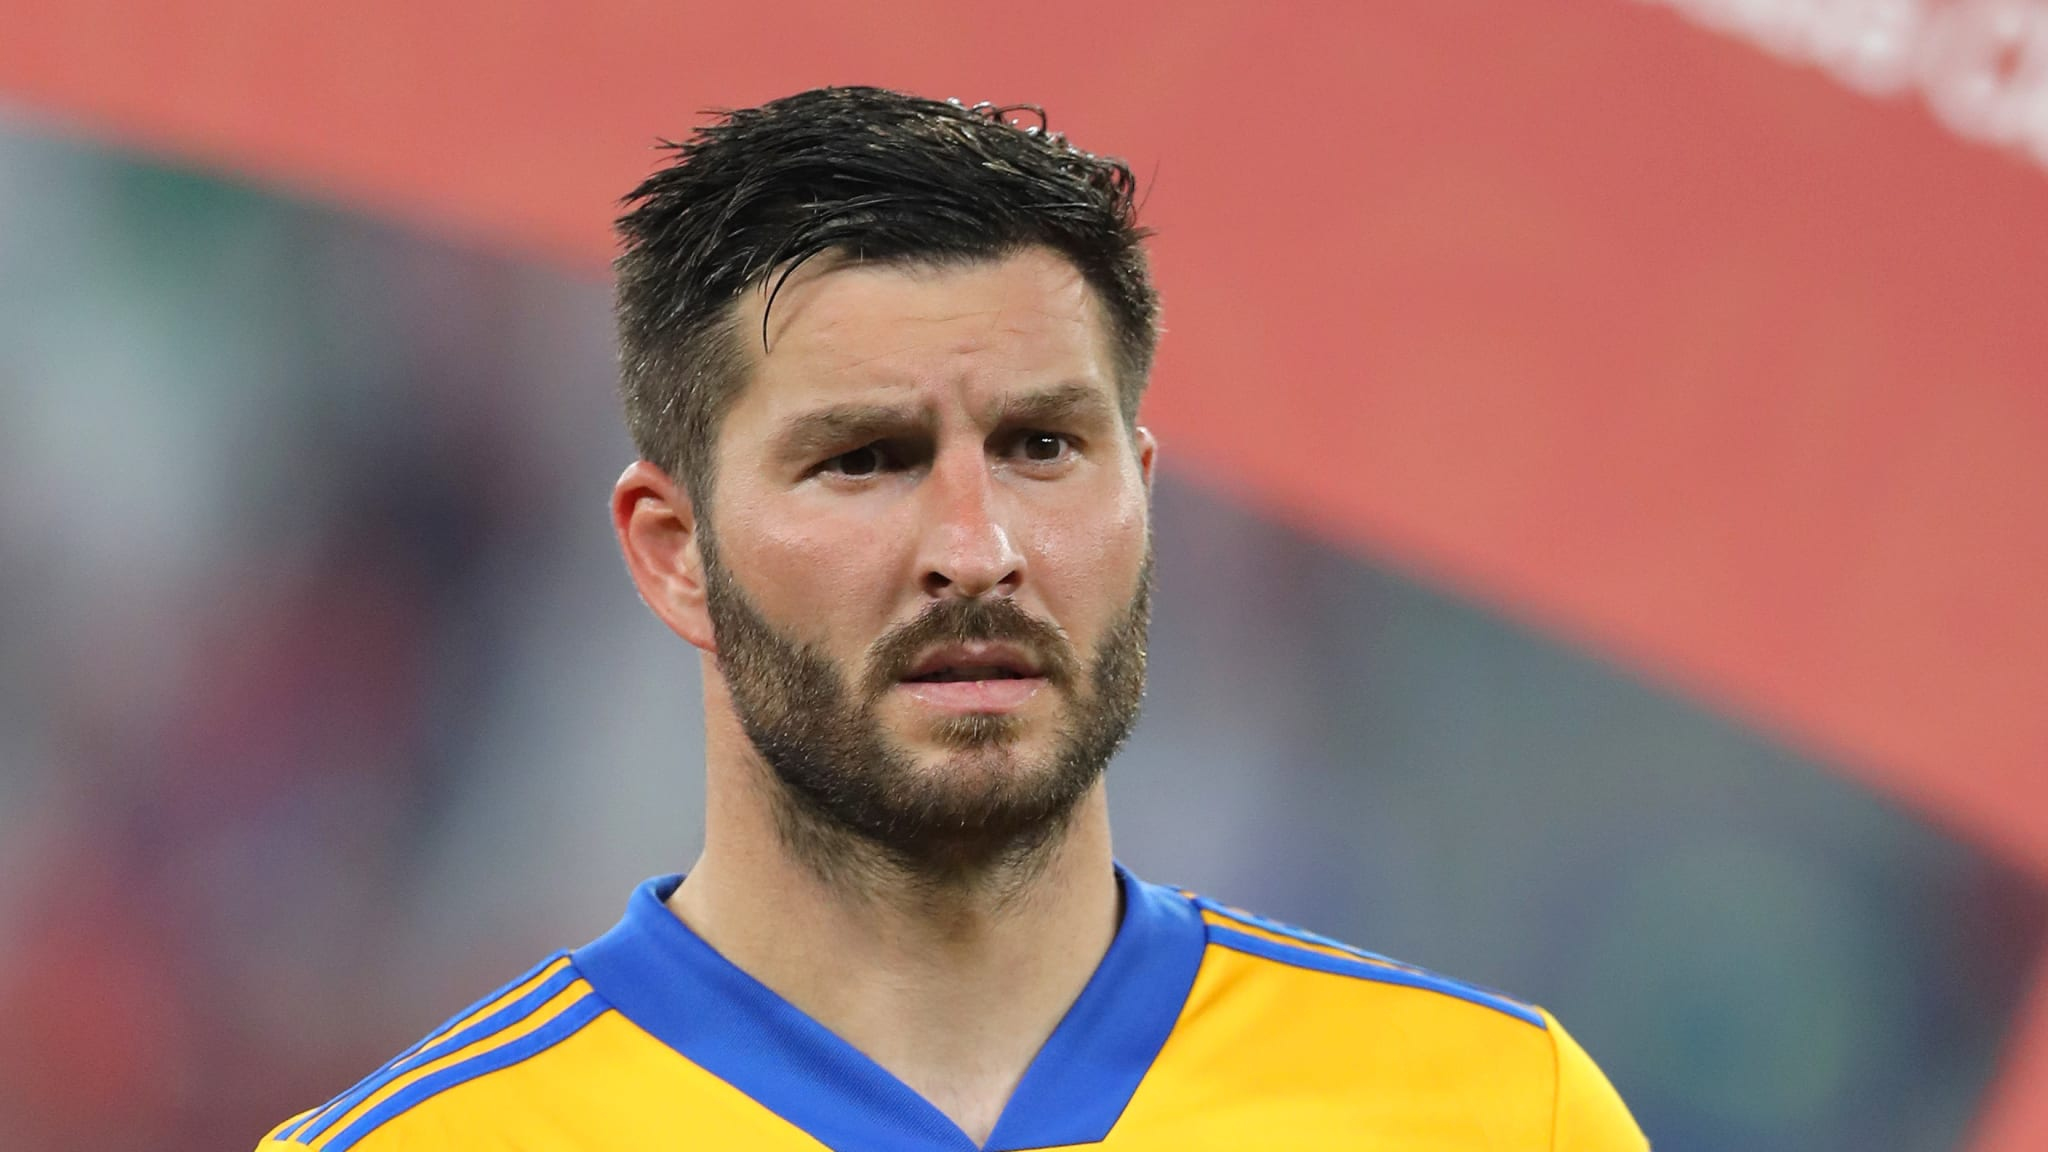 Andre-Pierre Gignac of Tigres UANL poses with the FIFA Club World Cup Qatar 2020 adidas silver ball trophy